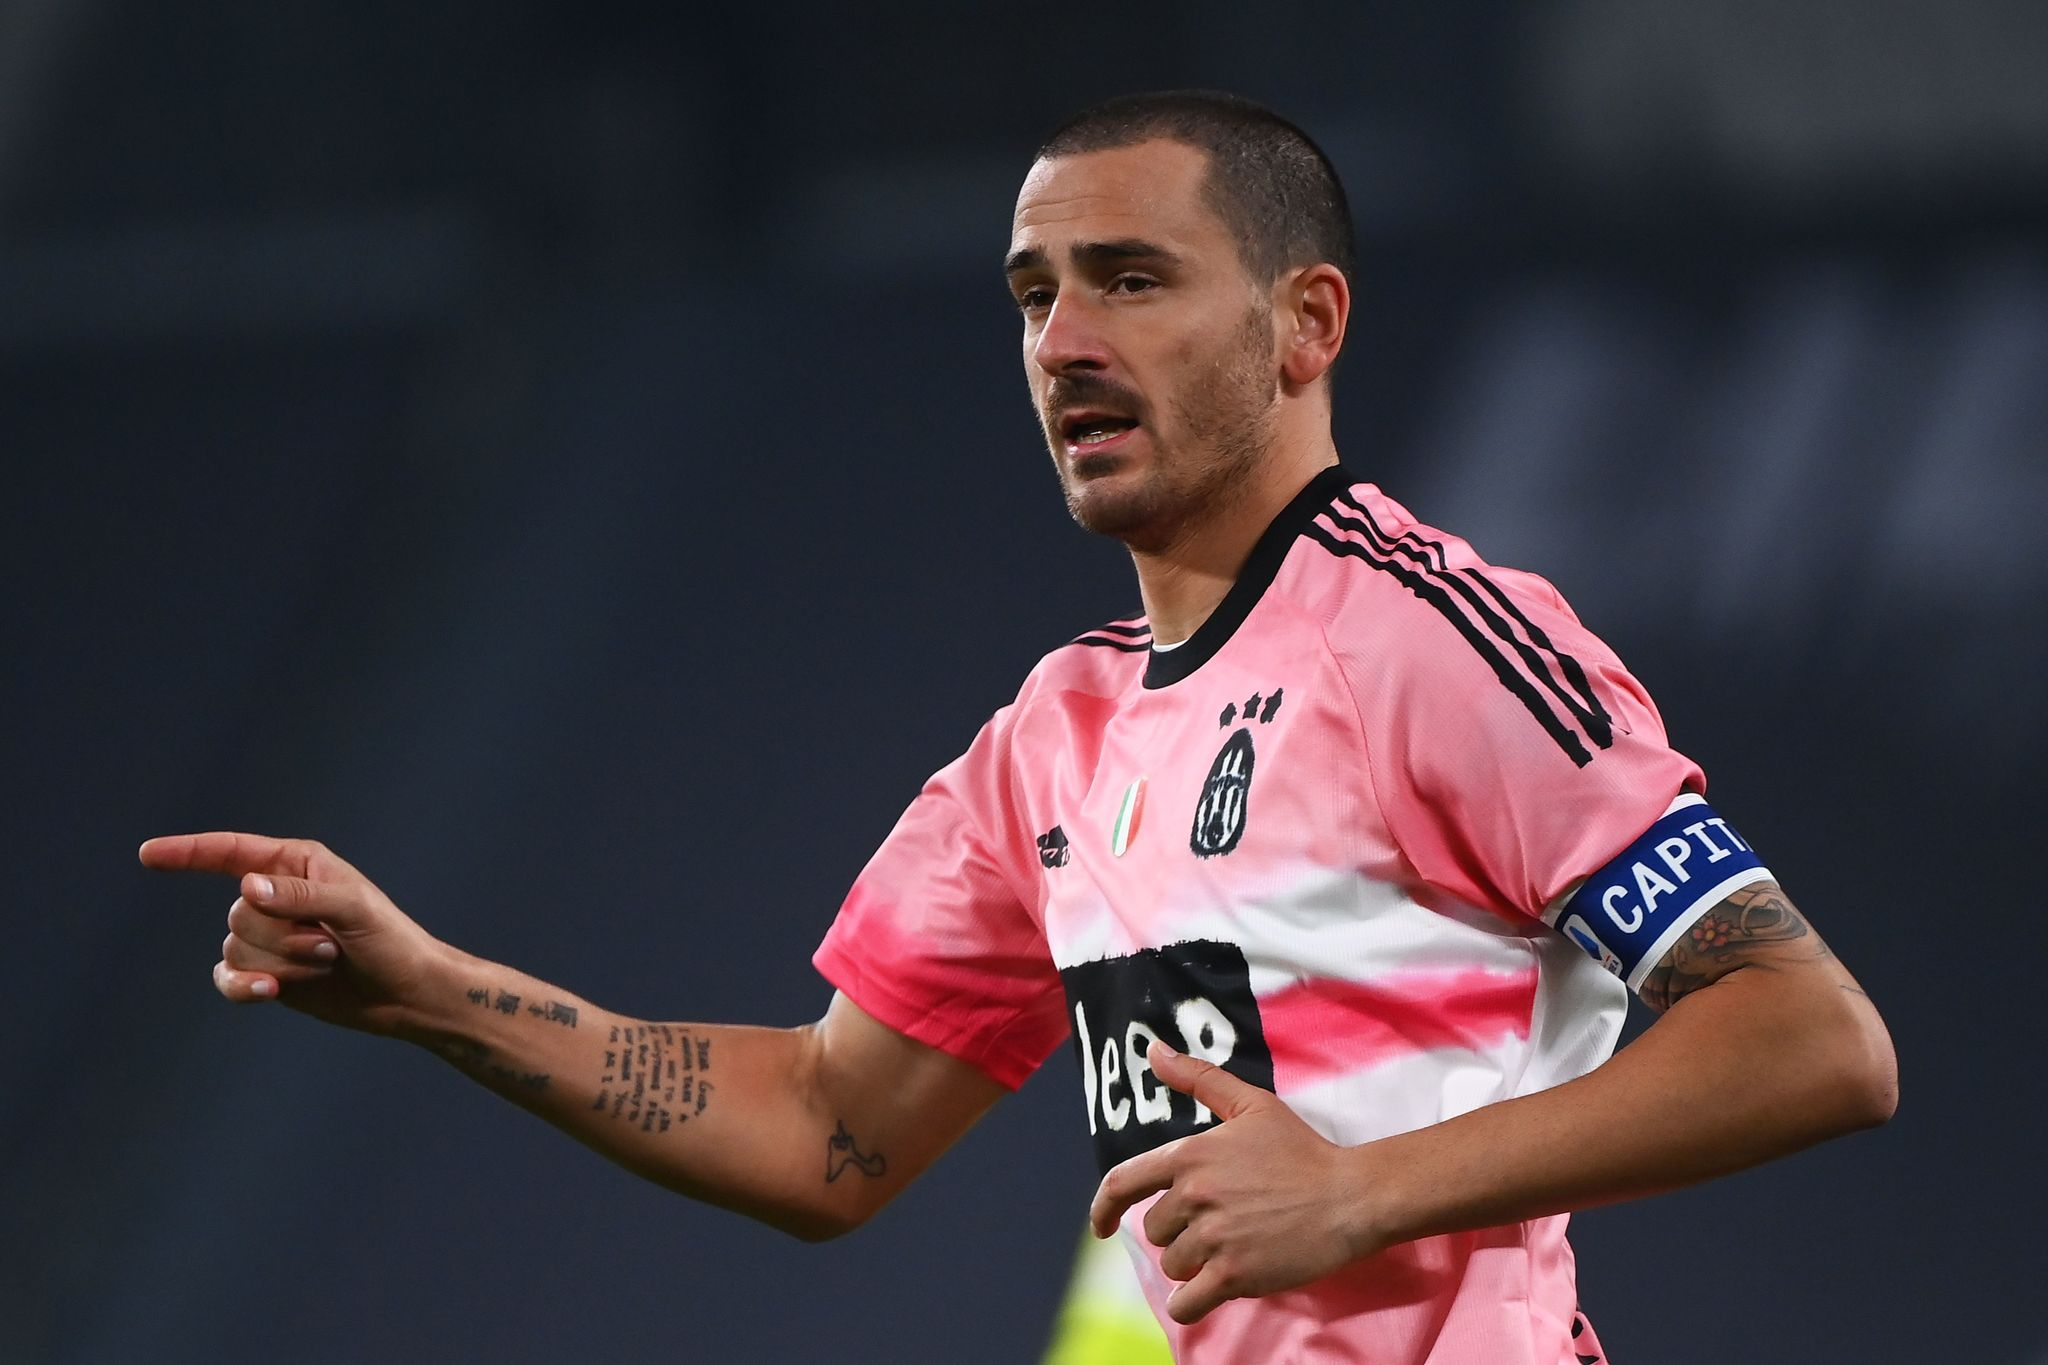 Juventus Italian defender Leonardo lt;HIT gt;Bonucci lt;/HIT gt; gestures during the Italian Serie A football match Juventus vs Verona at the Allianz Stadium in Turin, on October 25, 2020. (Photo by MARCO BERTORELLO / AFP)